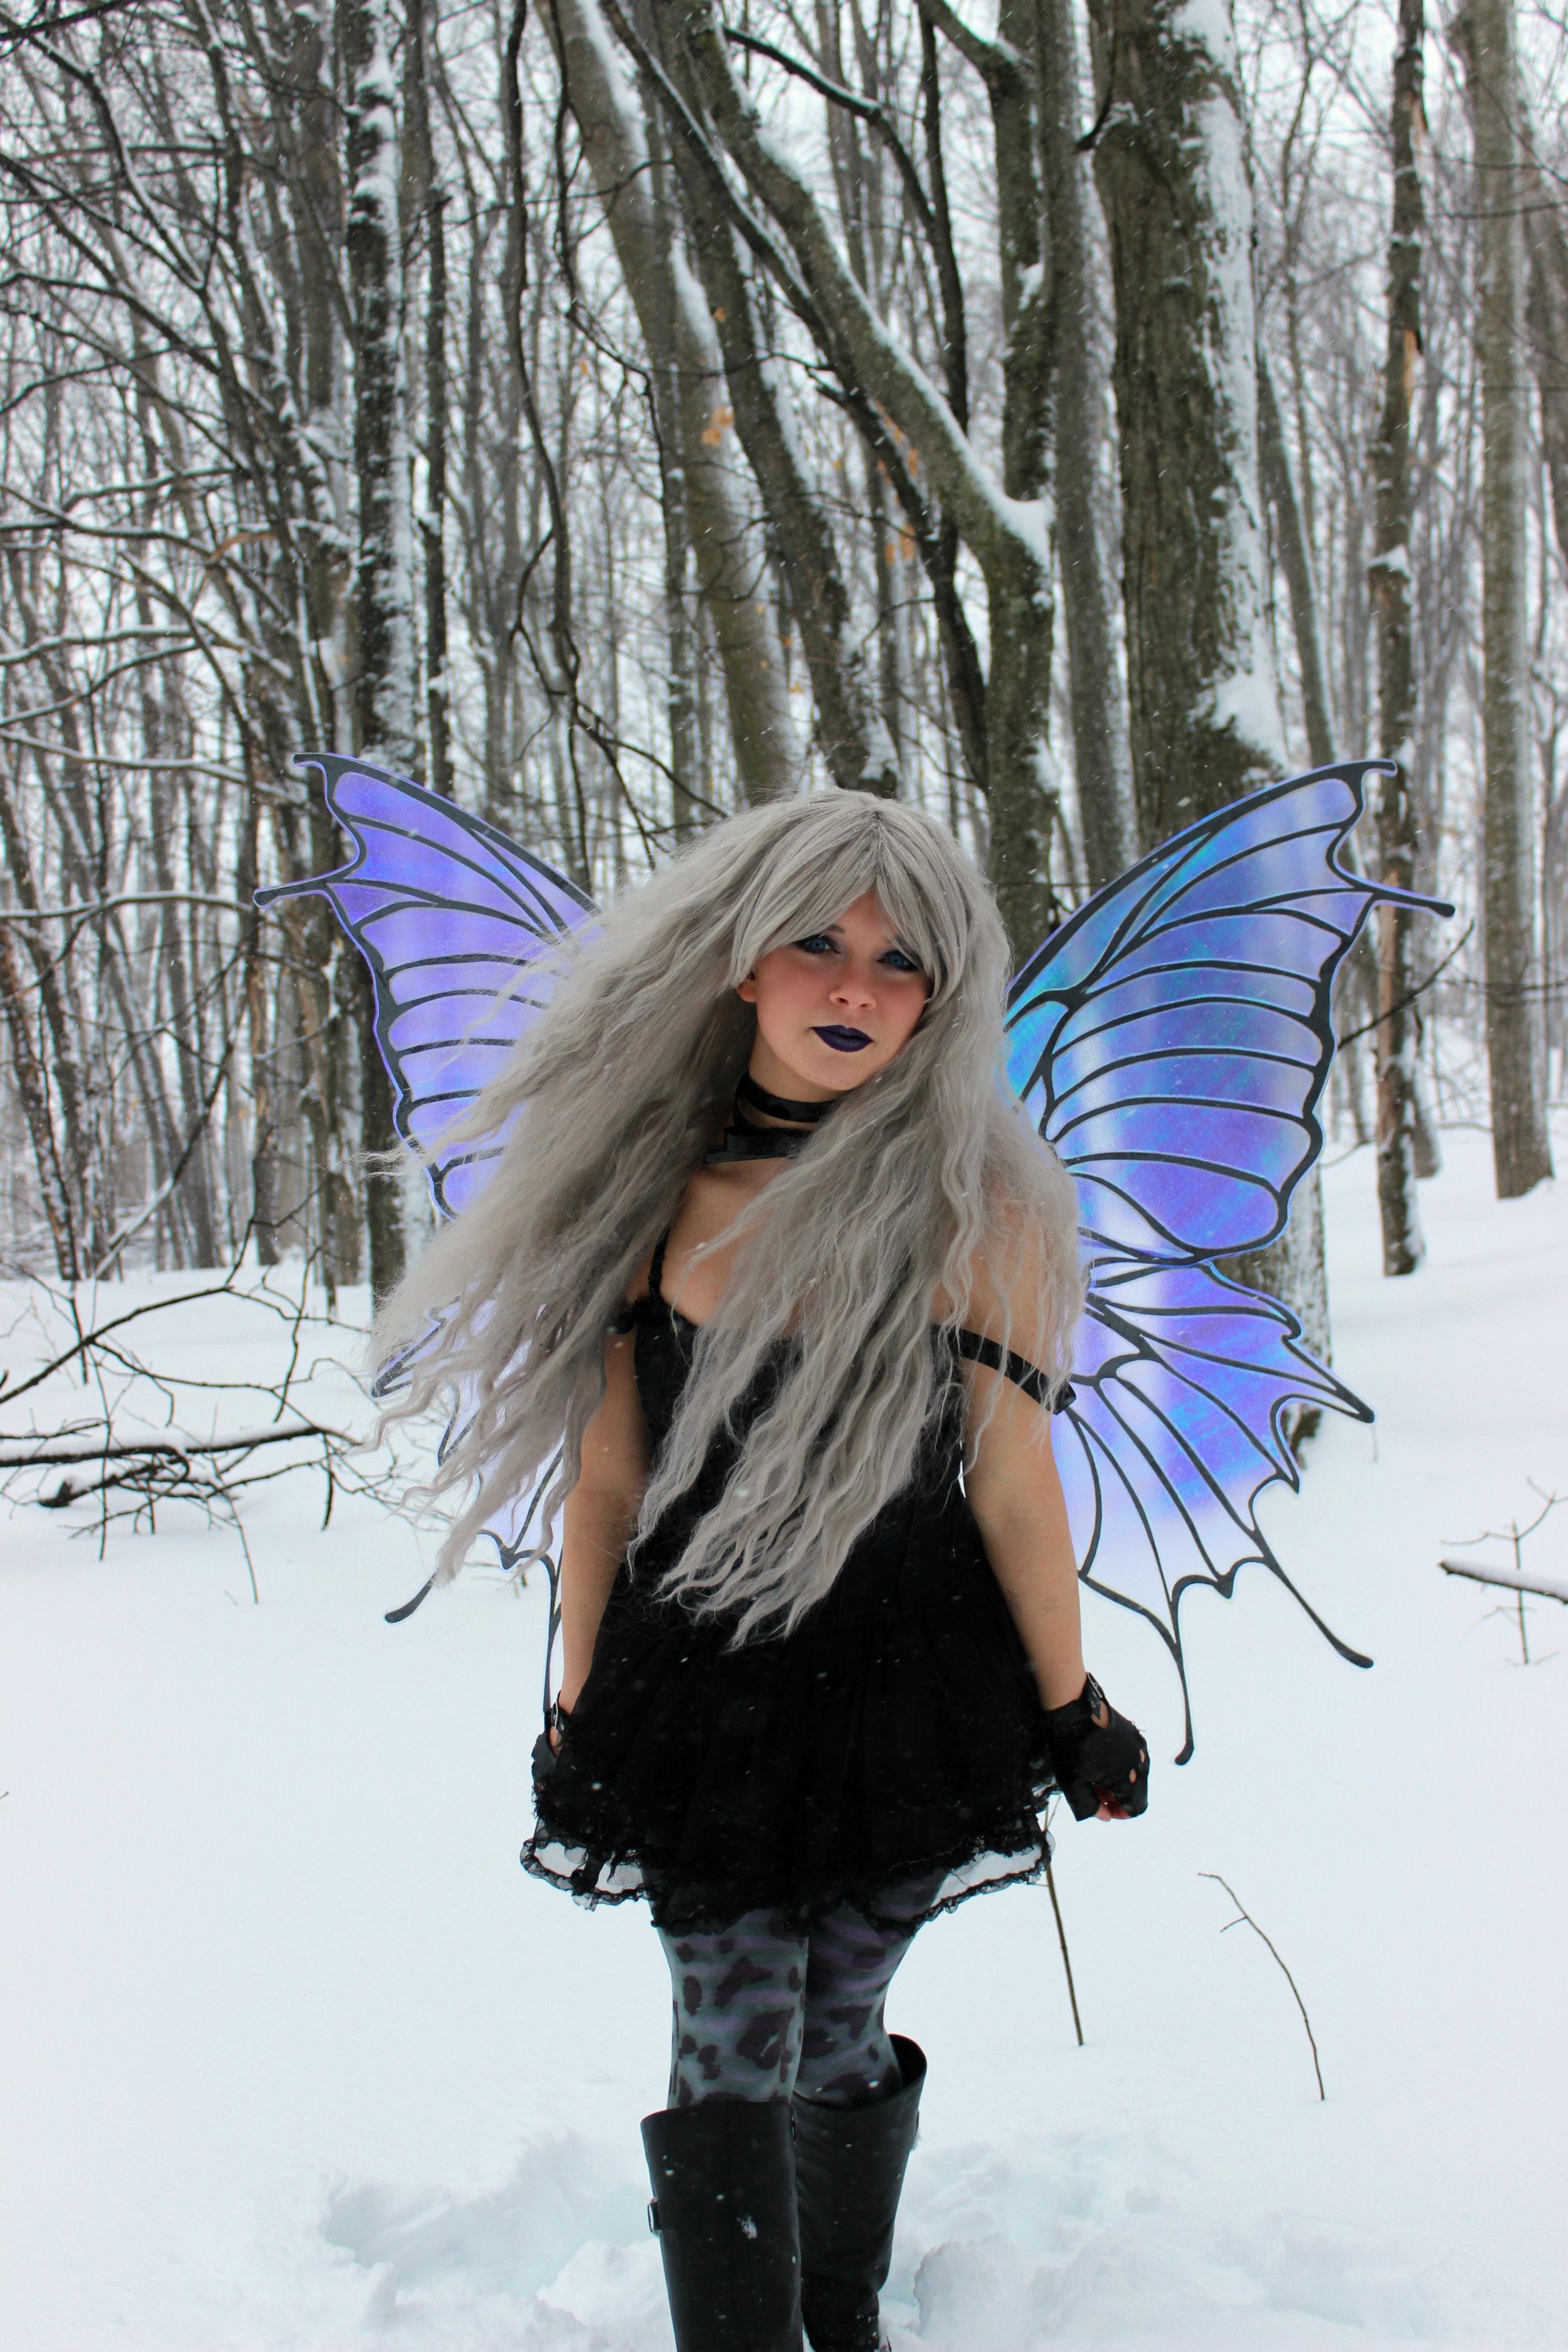 The Magic Crafter wearing her NEW Daydream Butterfly Fairy Cosplay wings by Hello Faerie. These enormous wings have transformed Mermaid Phantom into a Gothic Pixie. Don't they look amazingly real!?!!?